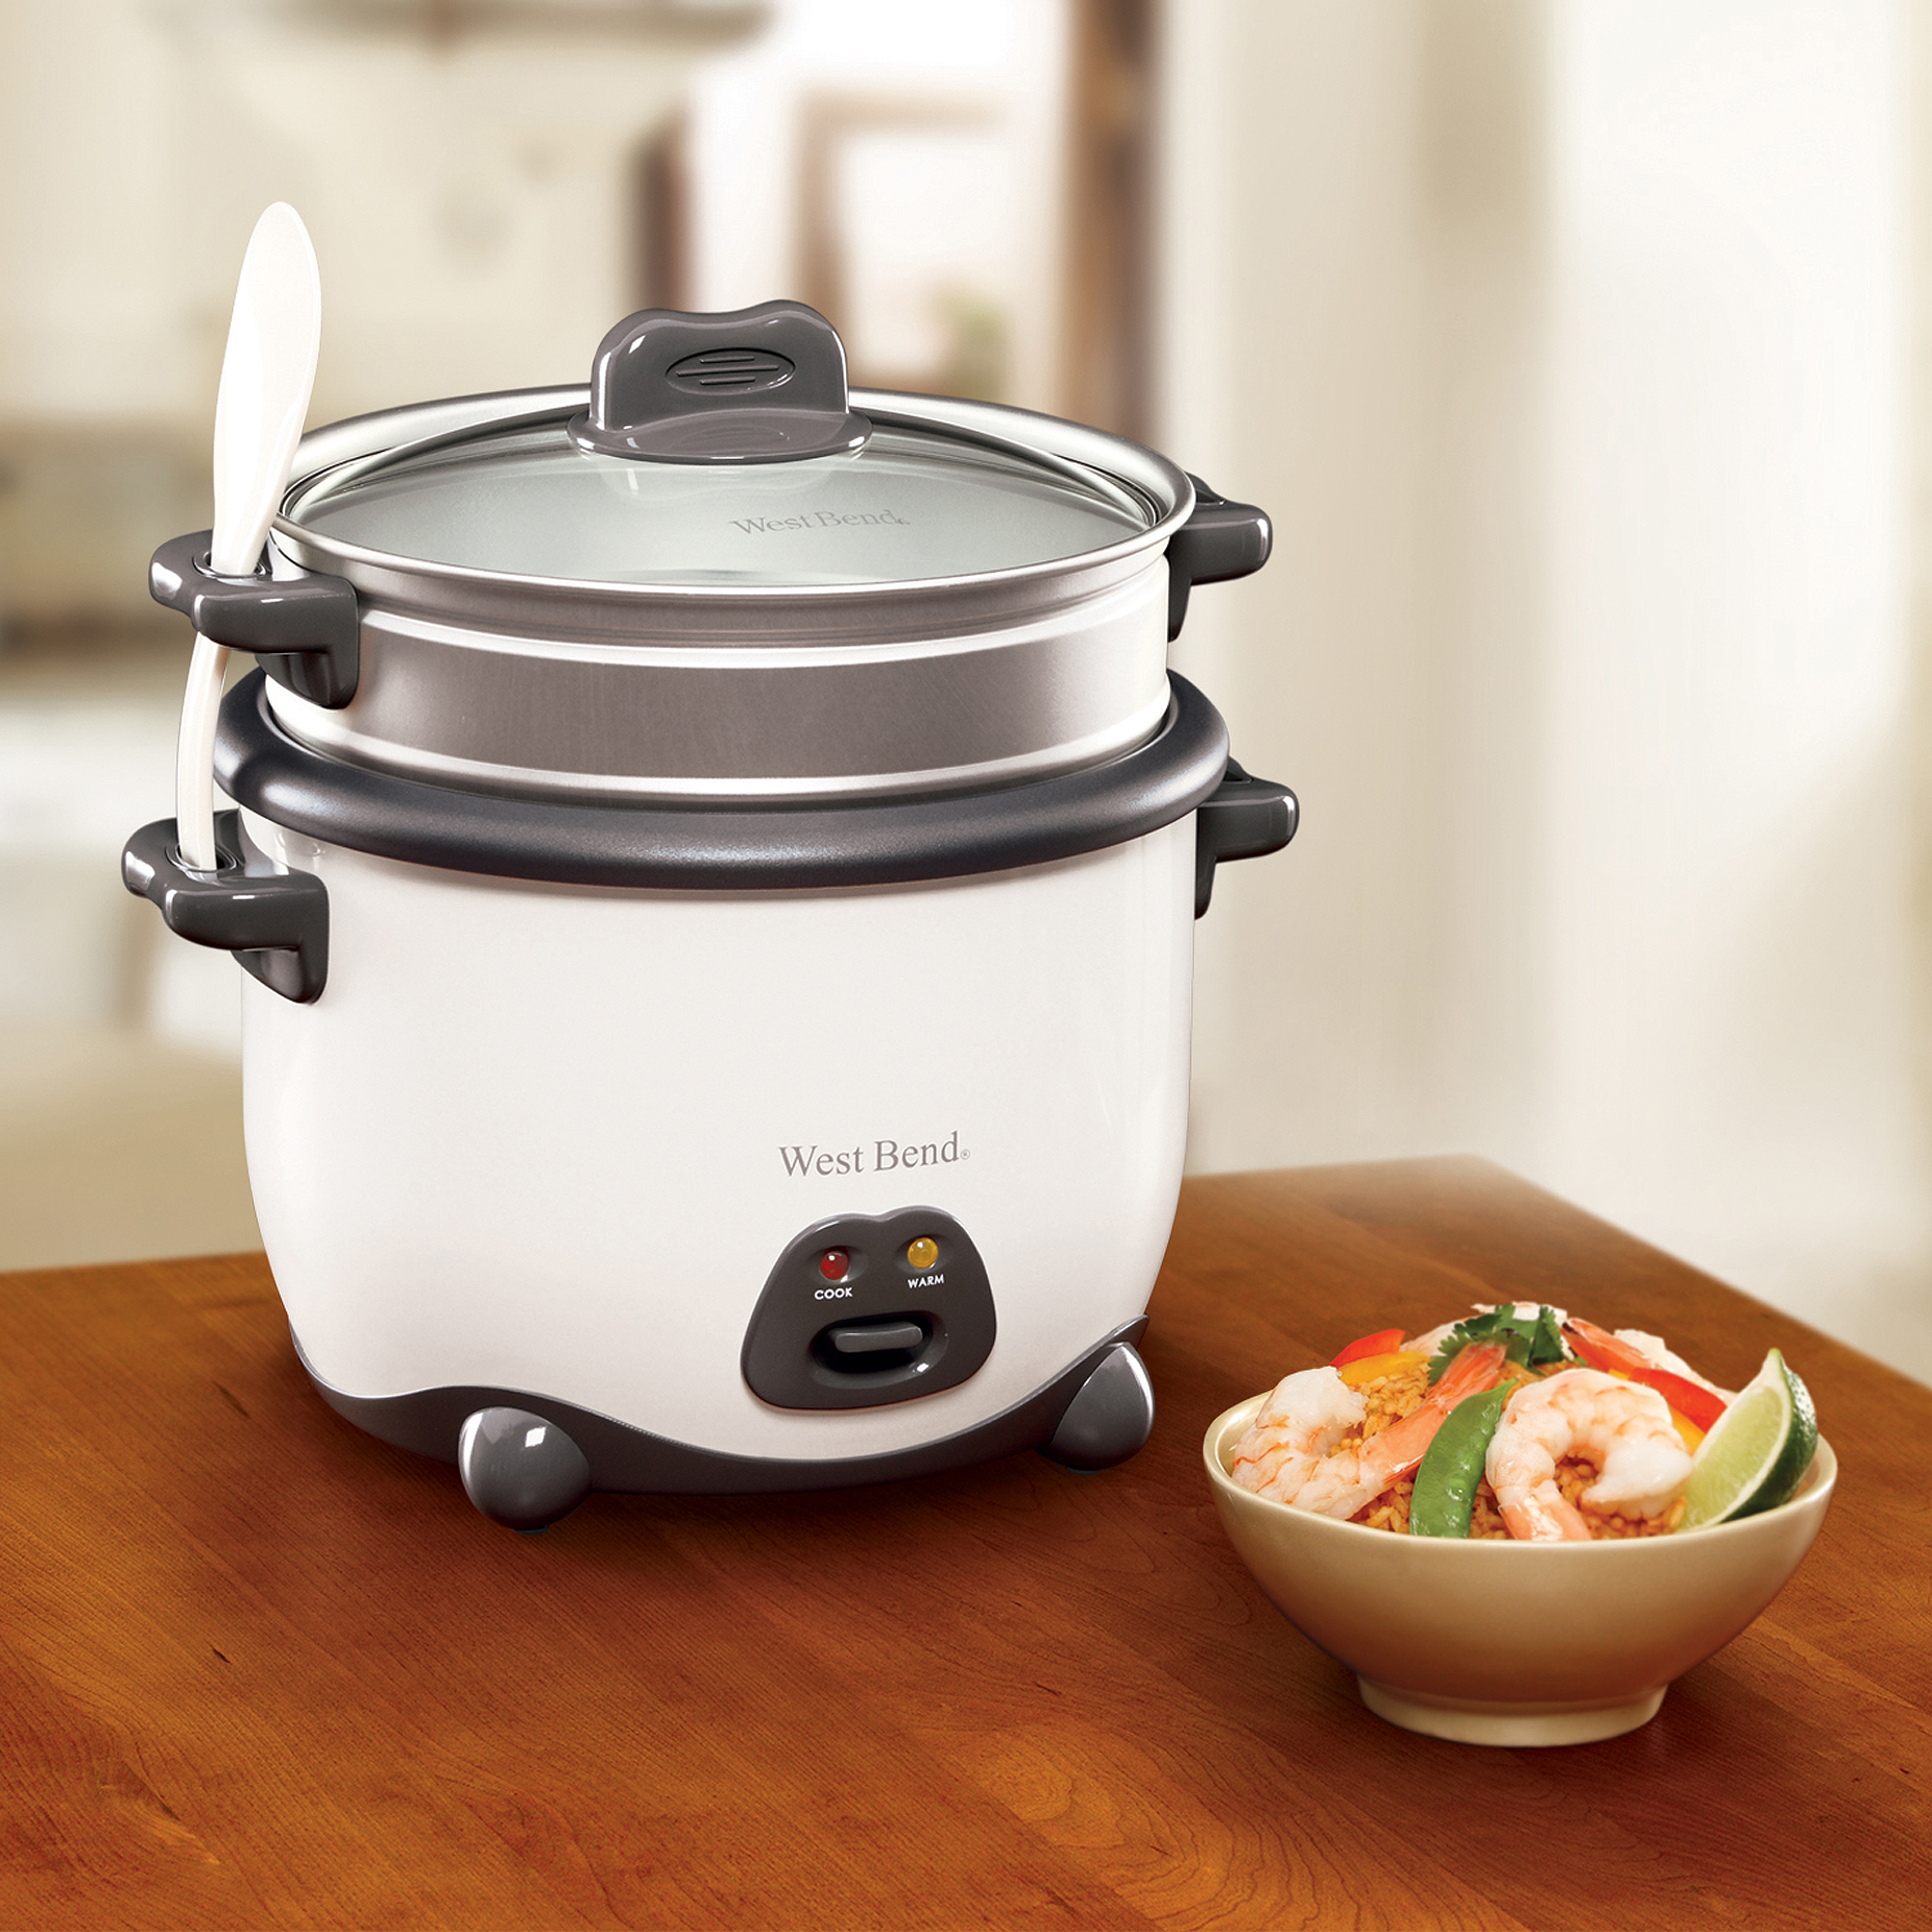 West Bend 10-Cup Rice Cooker, White